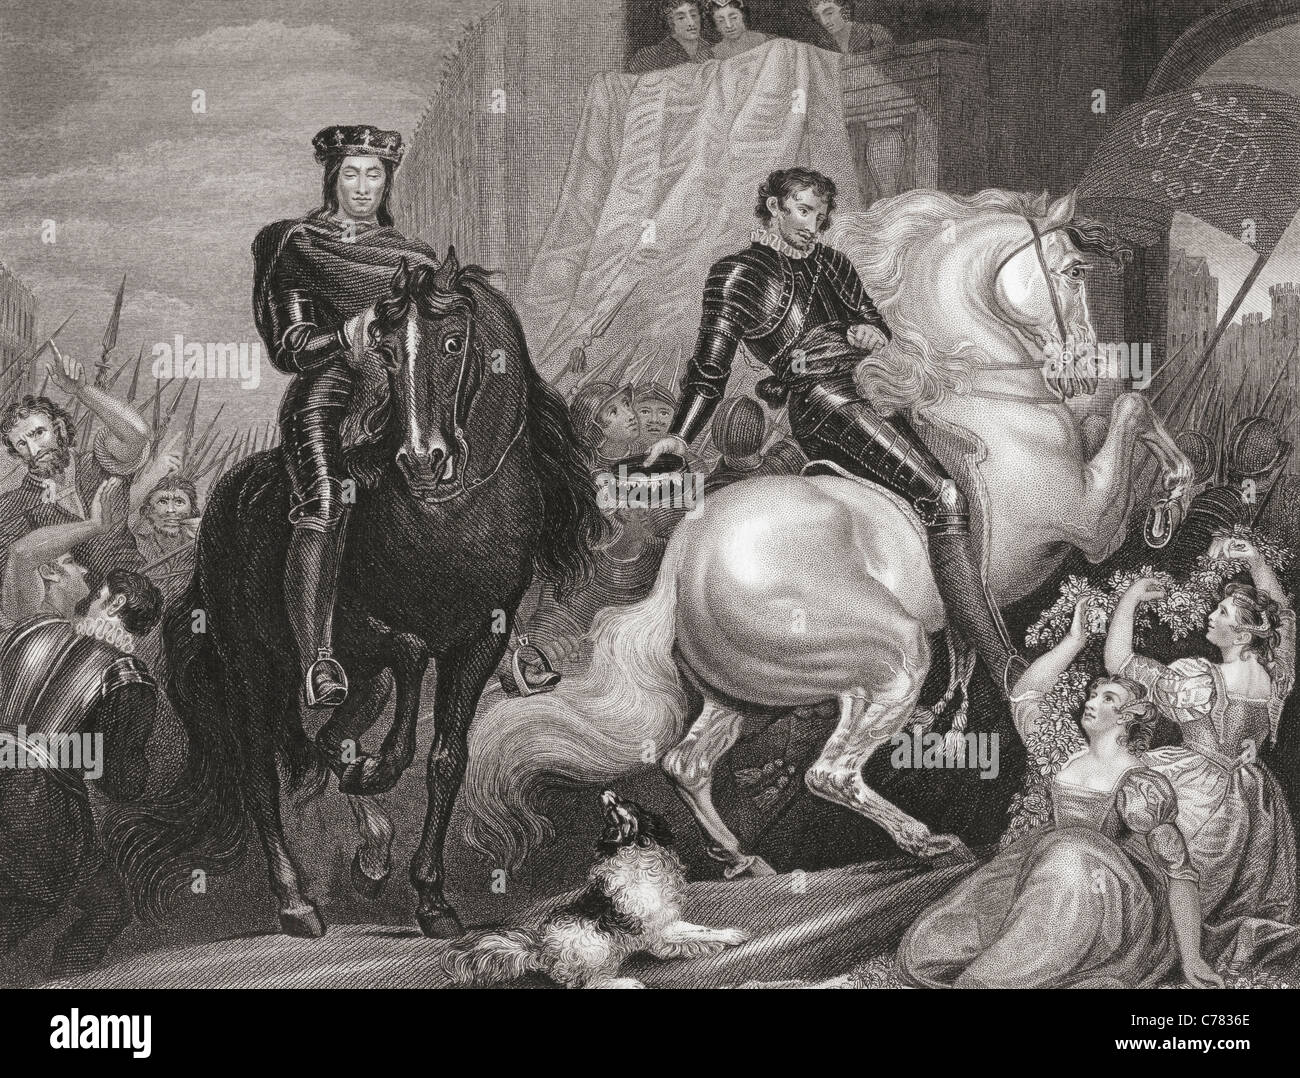 The entry of Richard II and Bolingbroke into London. - Stock Image